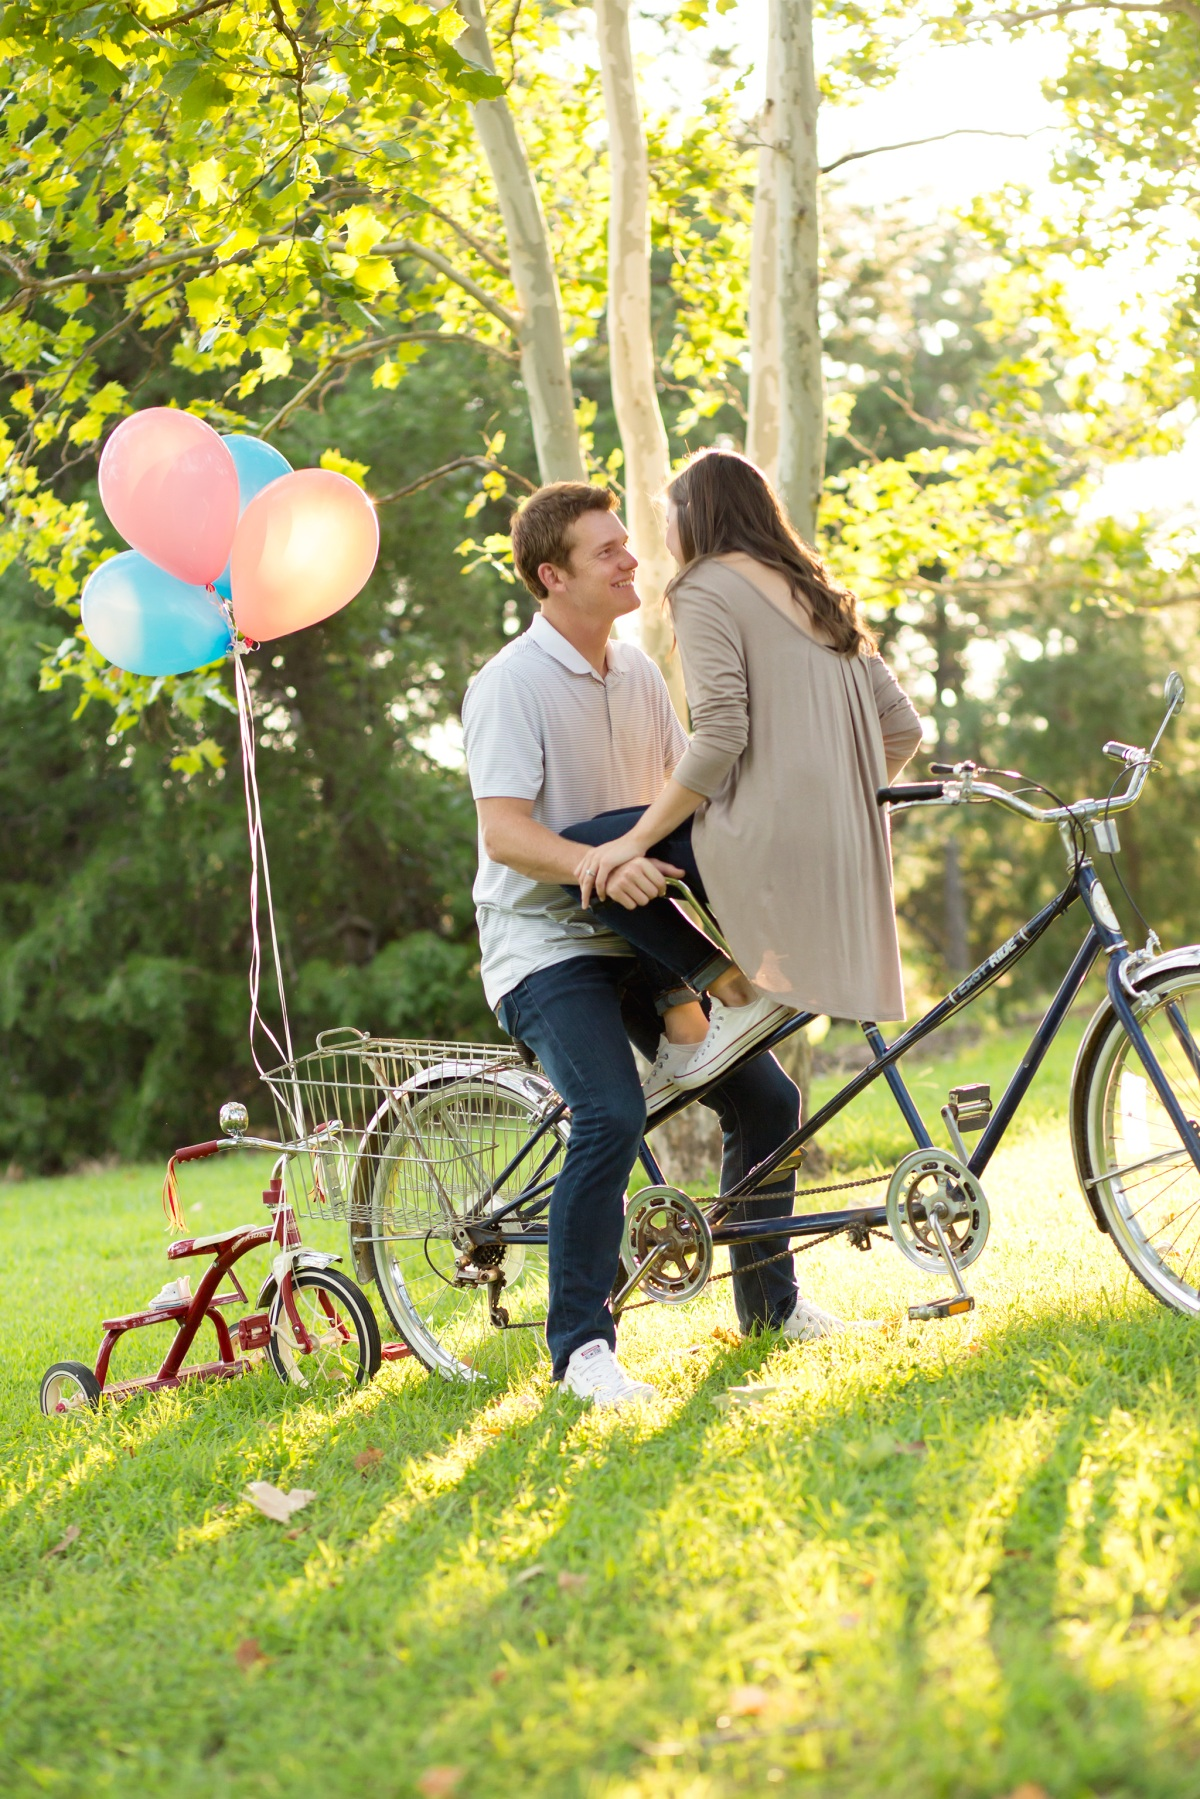 Couple sitting on bike with balloons at Baby Announcement Photoshoot in Stillwater, Oklahoma July 2016